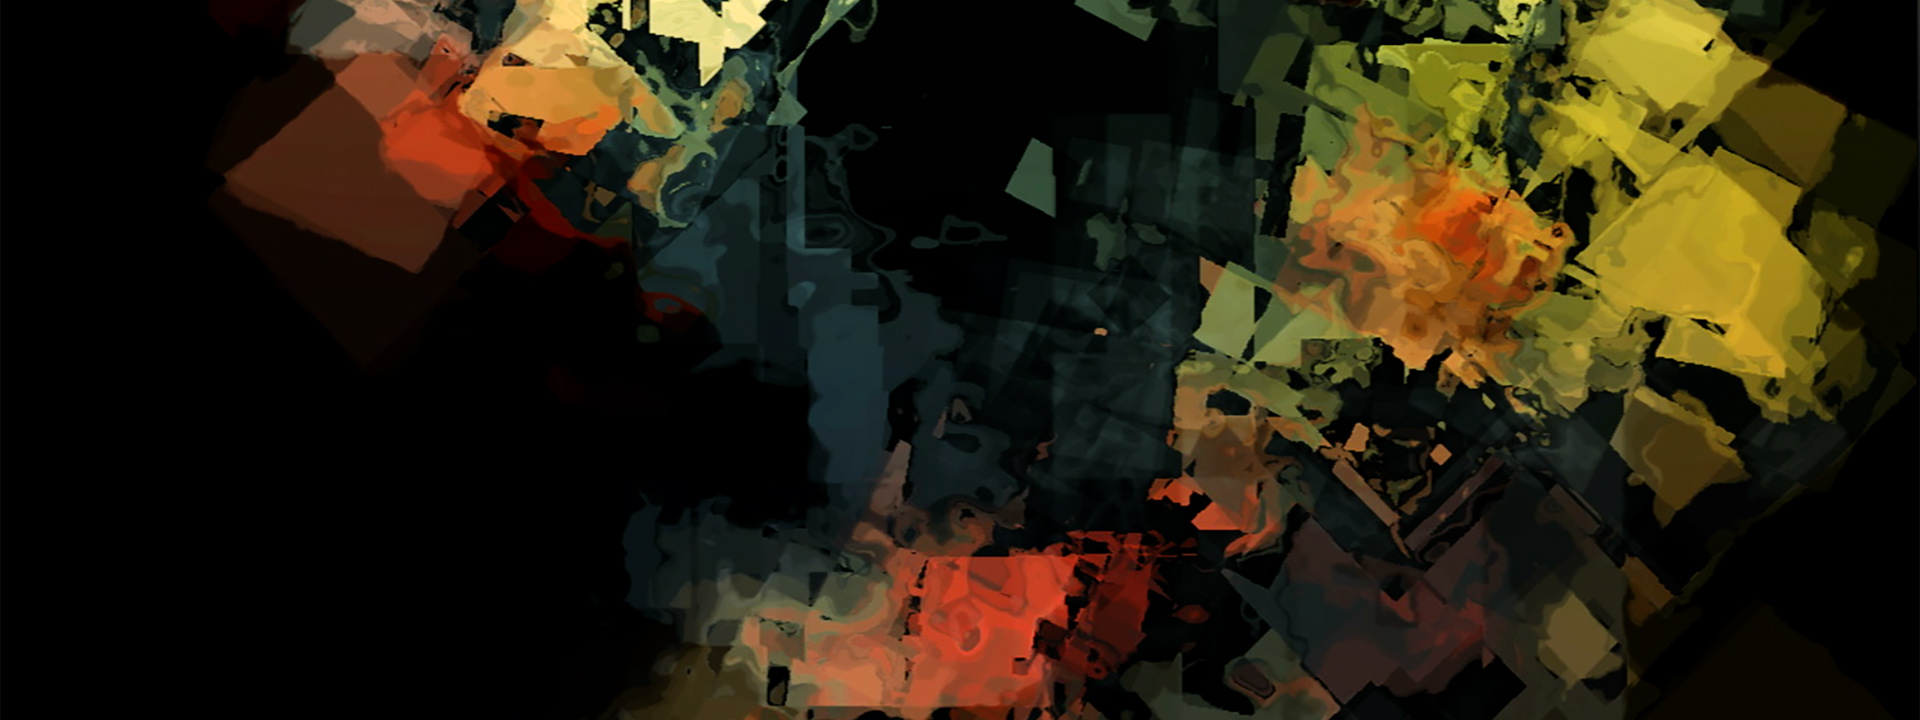 abstract compostion